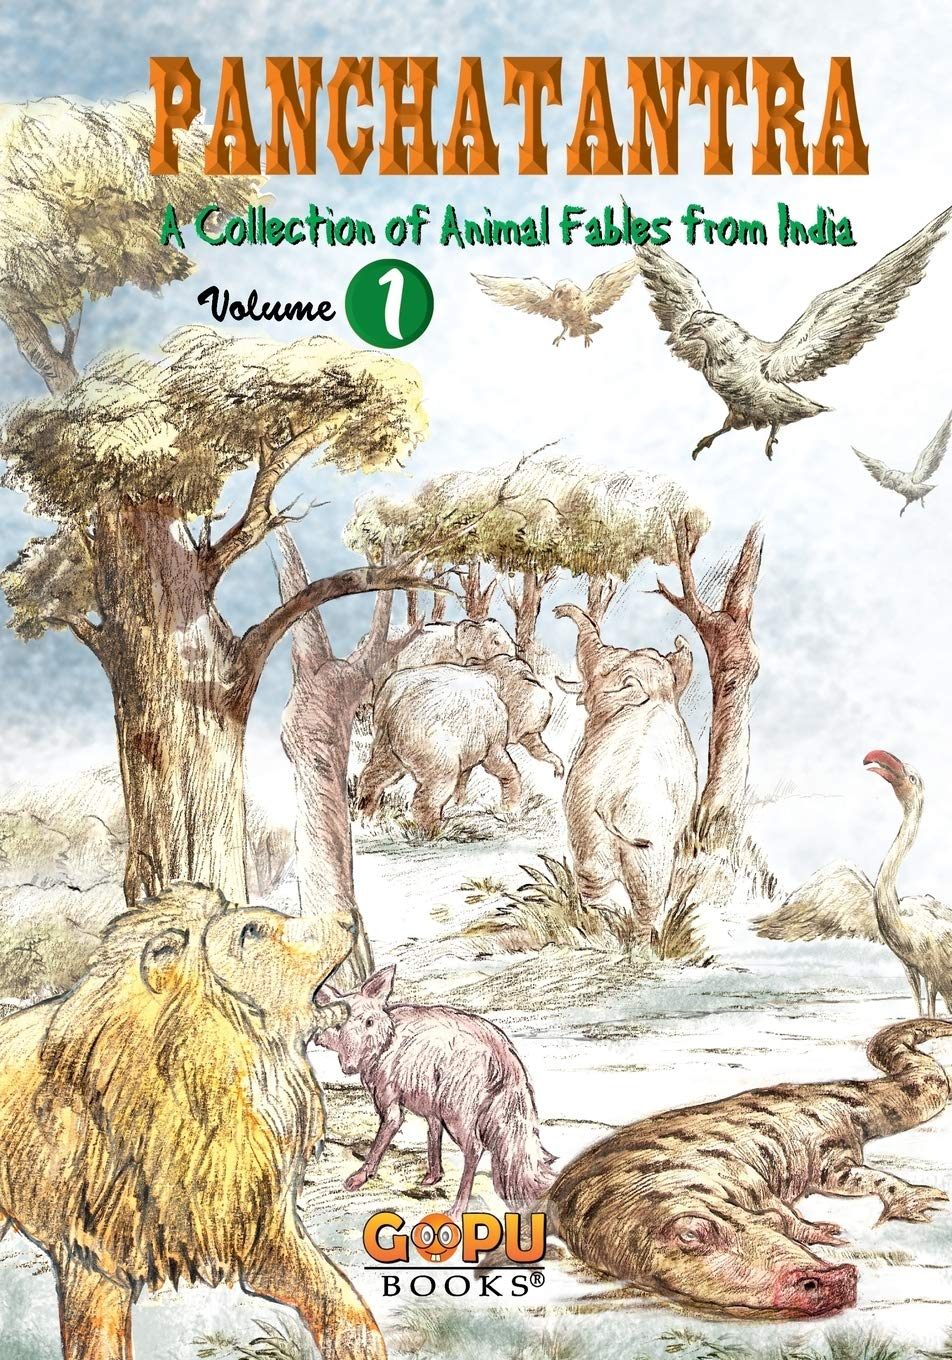 Panchatantra - Volume 1 (A Collection of Animal Fables from India)